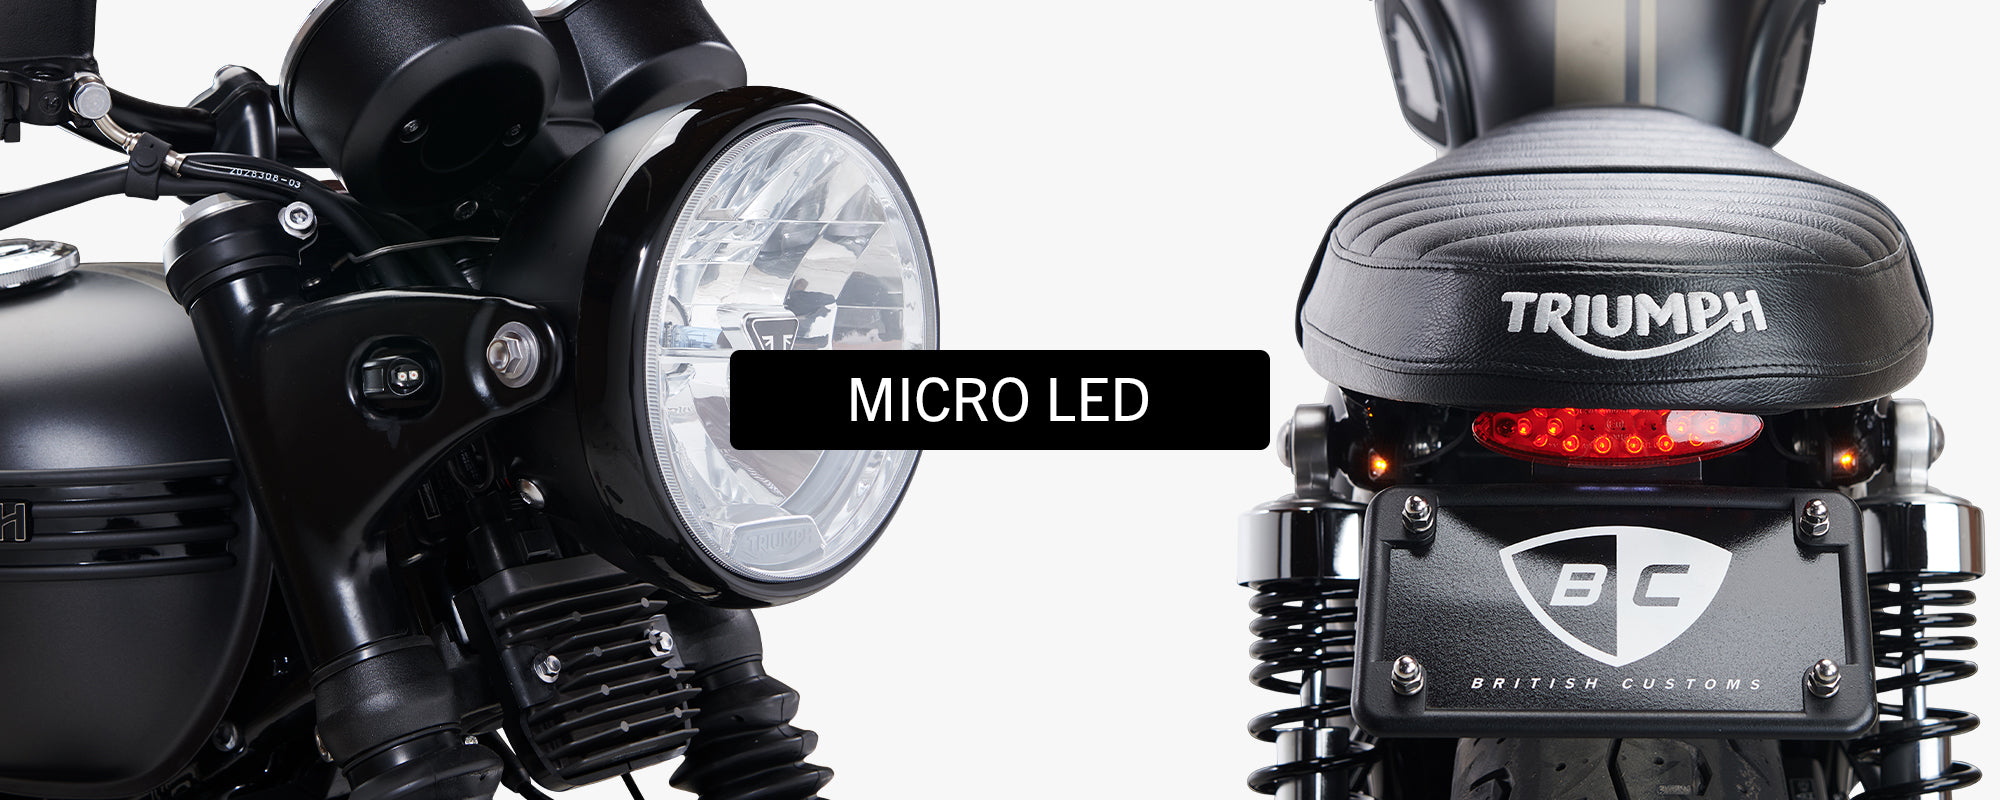 British Customs Micro LED Turn Signals Triumph Motorcycles